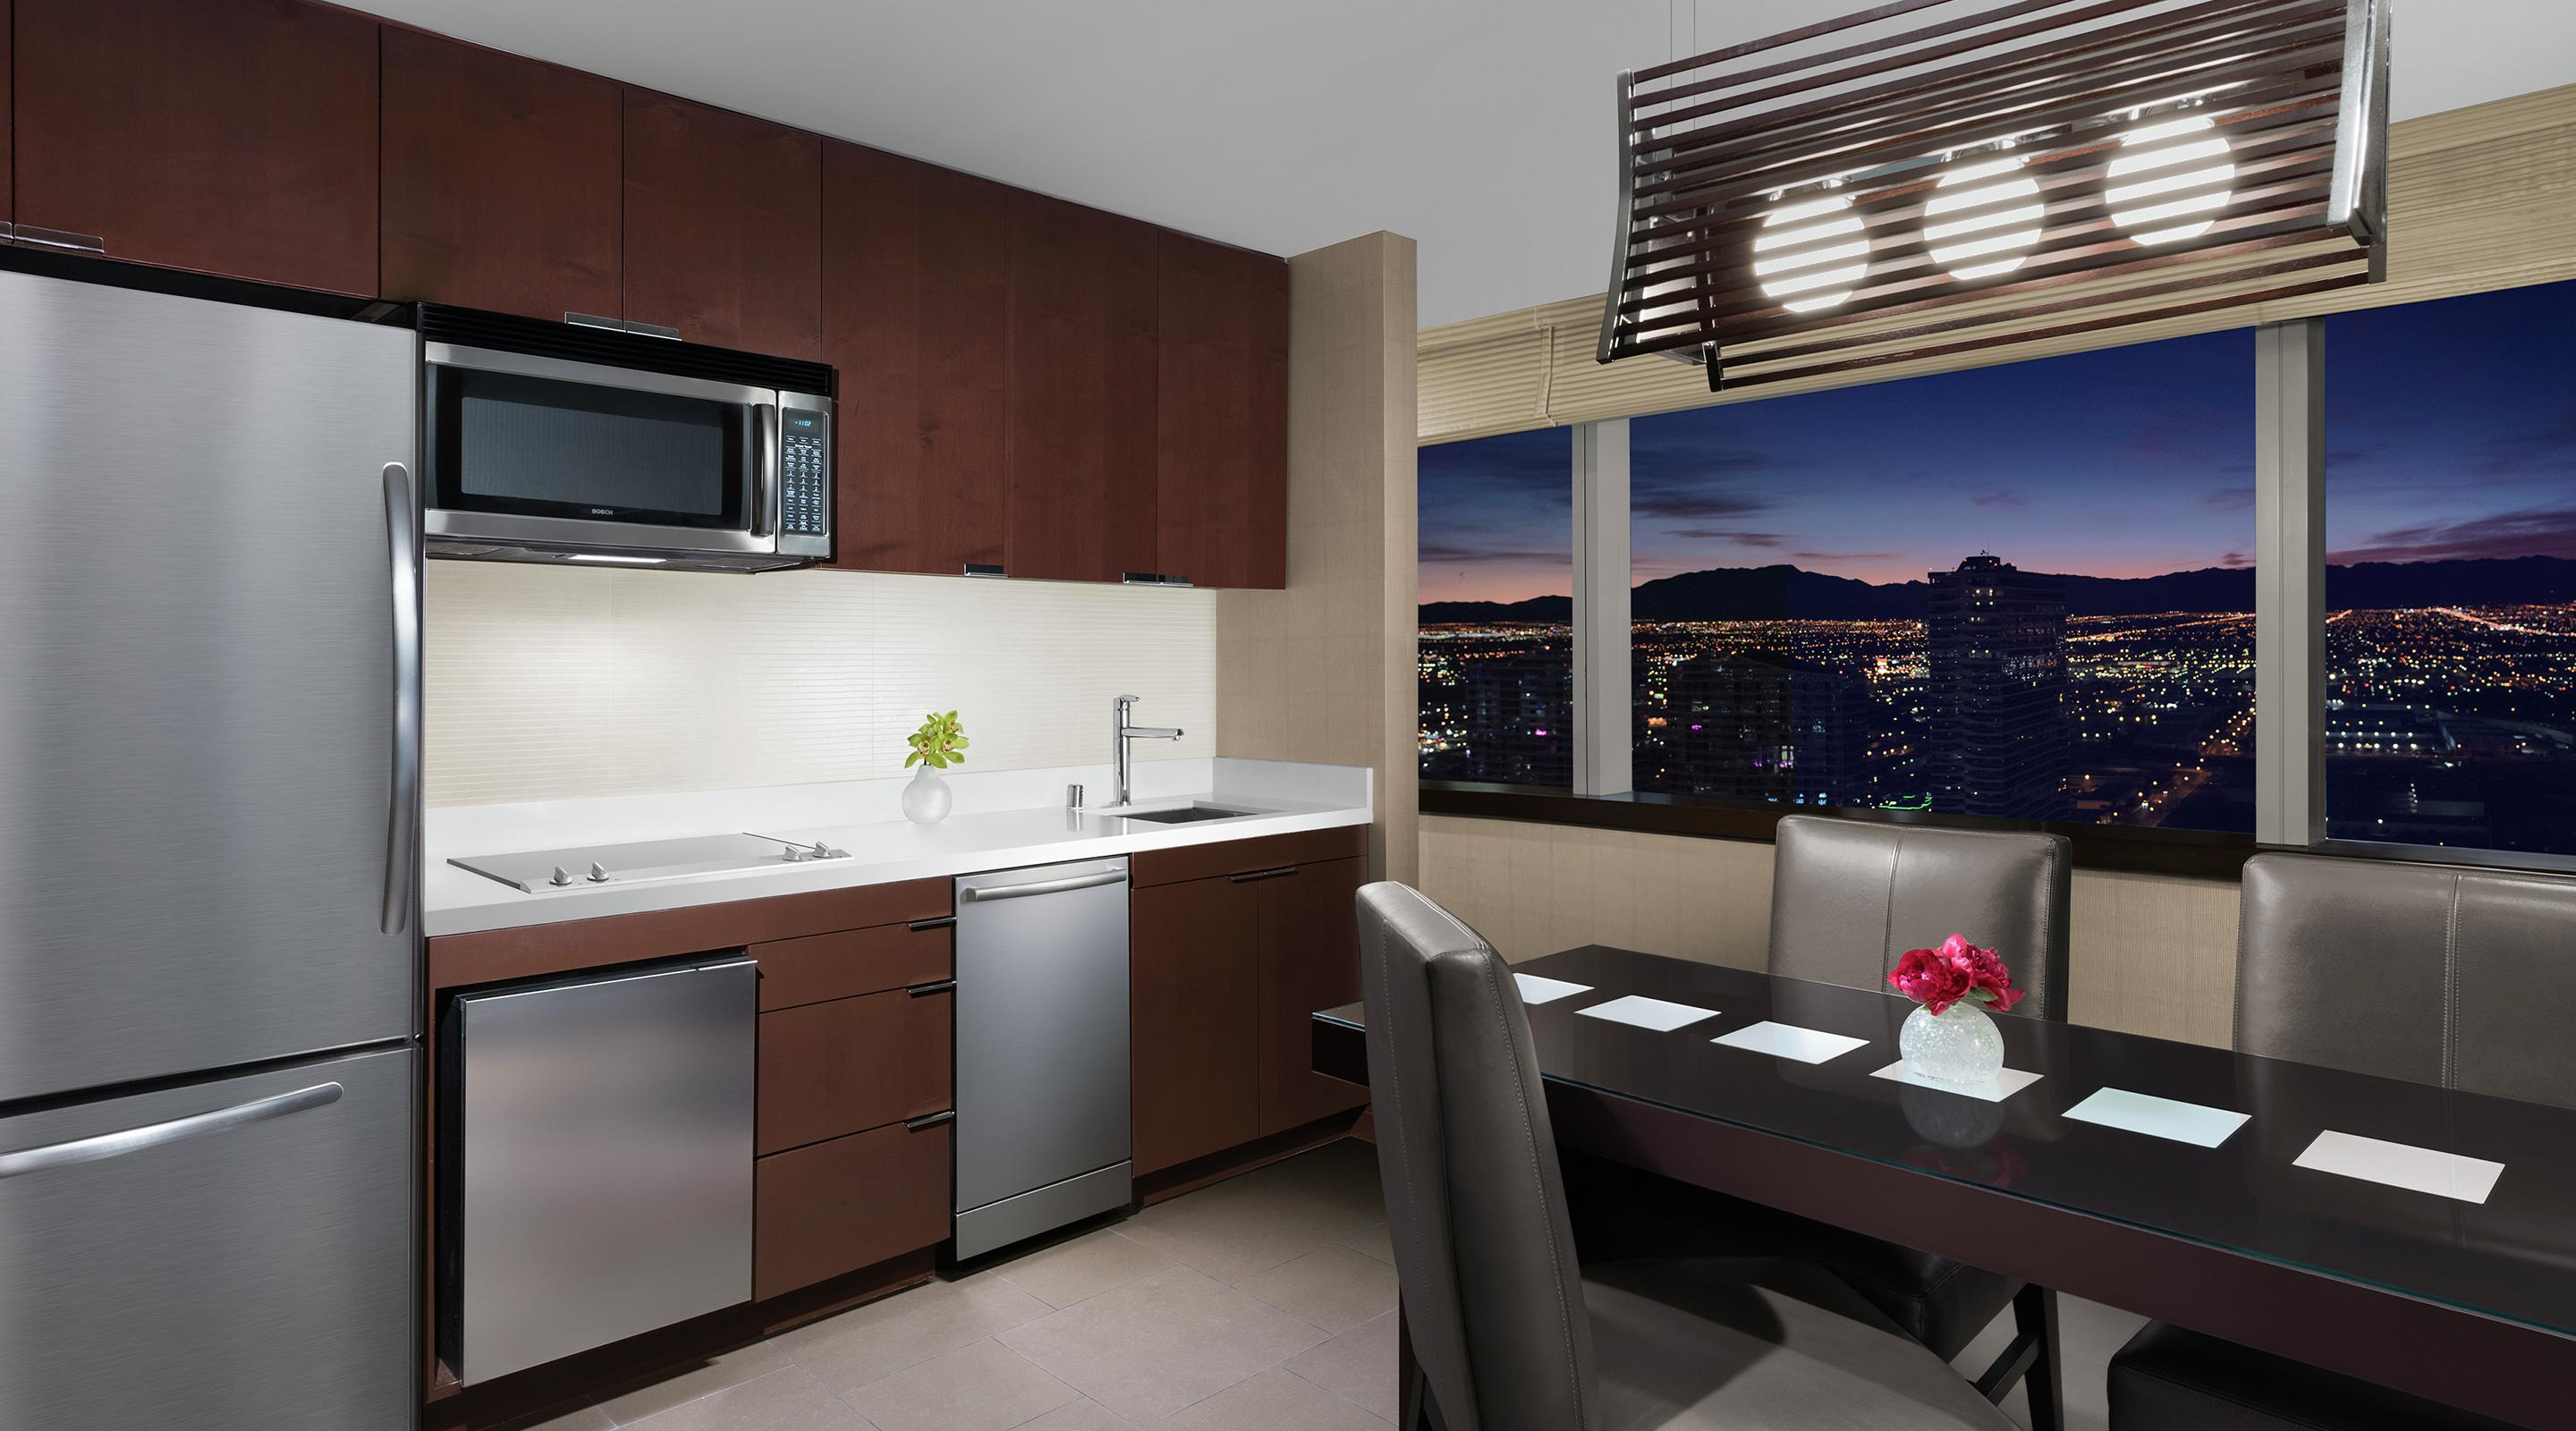 With 270° views and an expansive floor plan, this 811 square foot accommodation gives you perfect views.